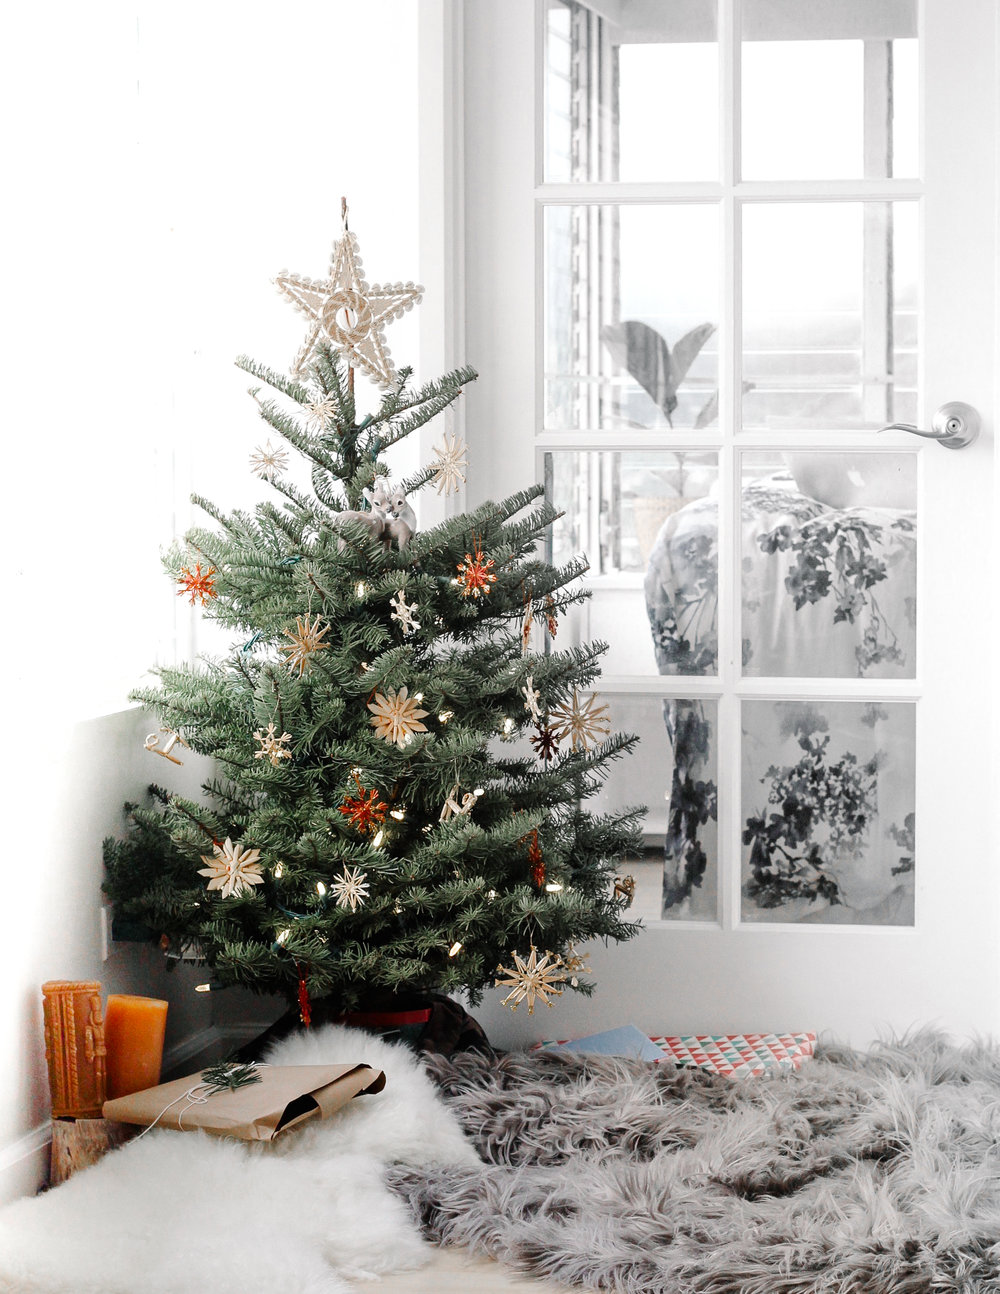 ( Can you spy our couple ornaments, hidden in the tree? )